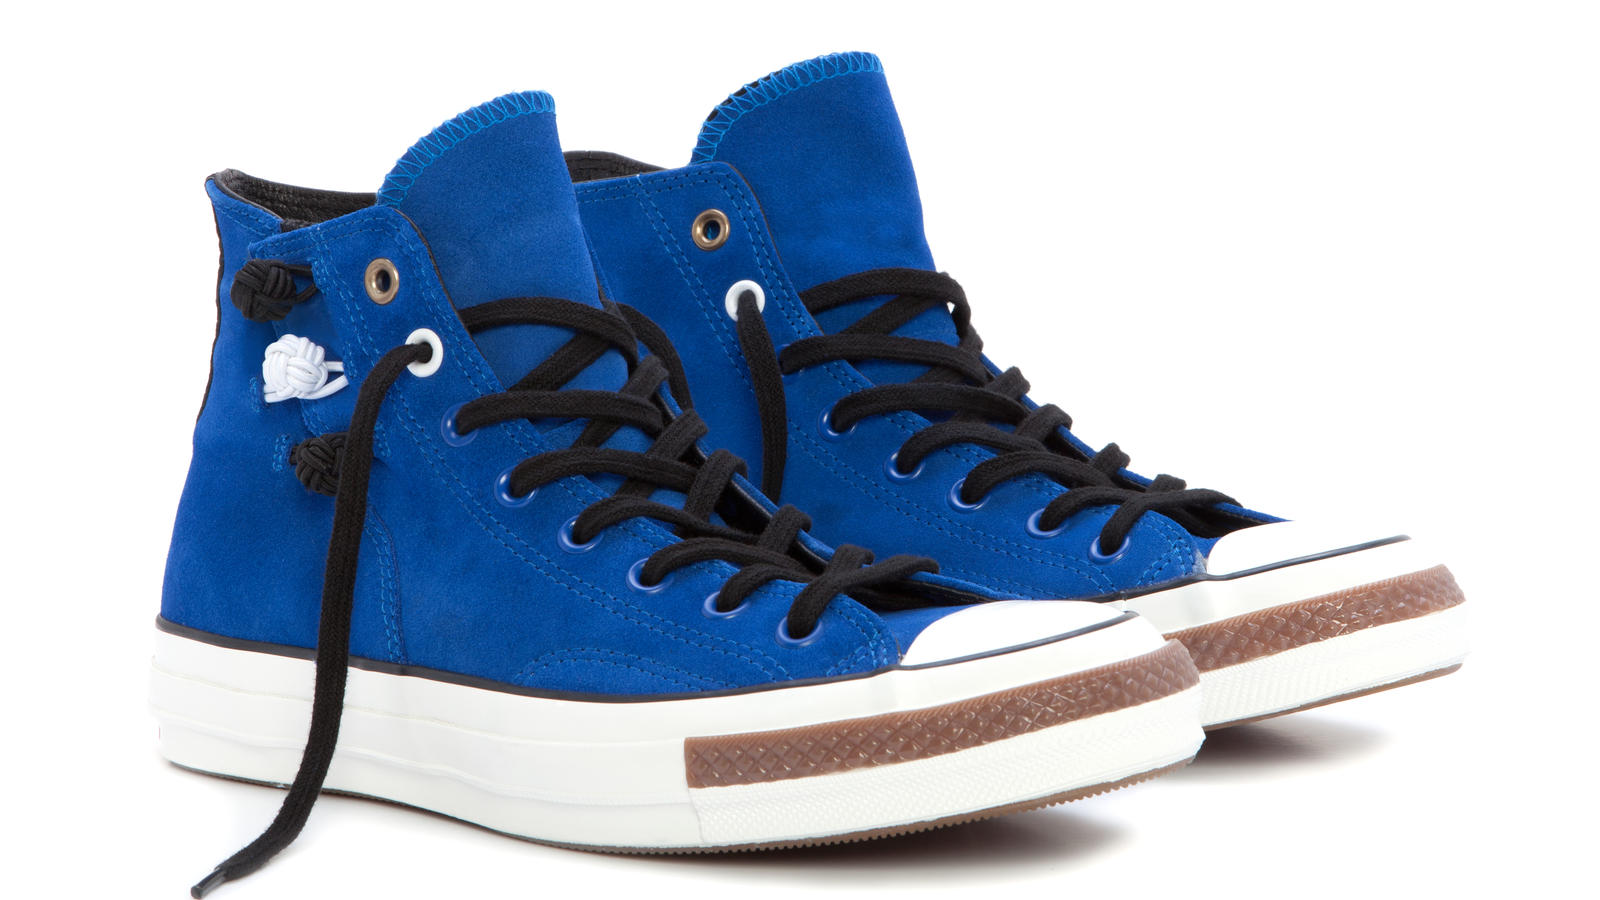 Converse has a rich heritage dating back to 1908, and their